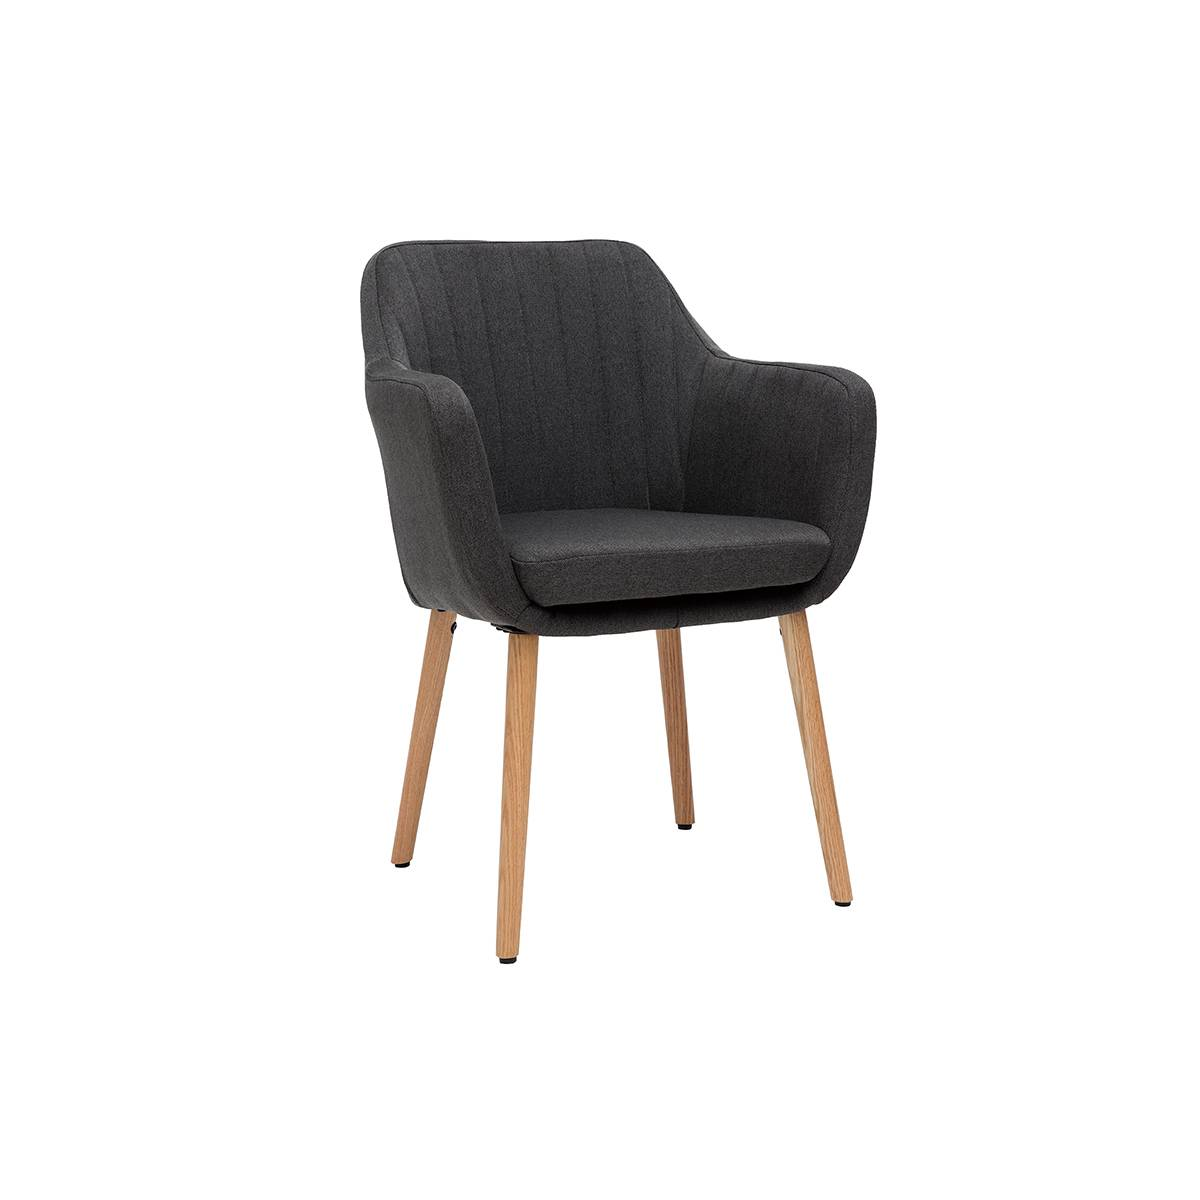 Miliboo Fauteuil scandinave gris anthracite et pieds chêne ALEYNA